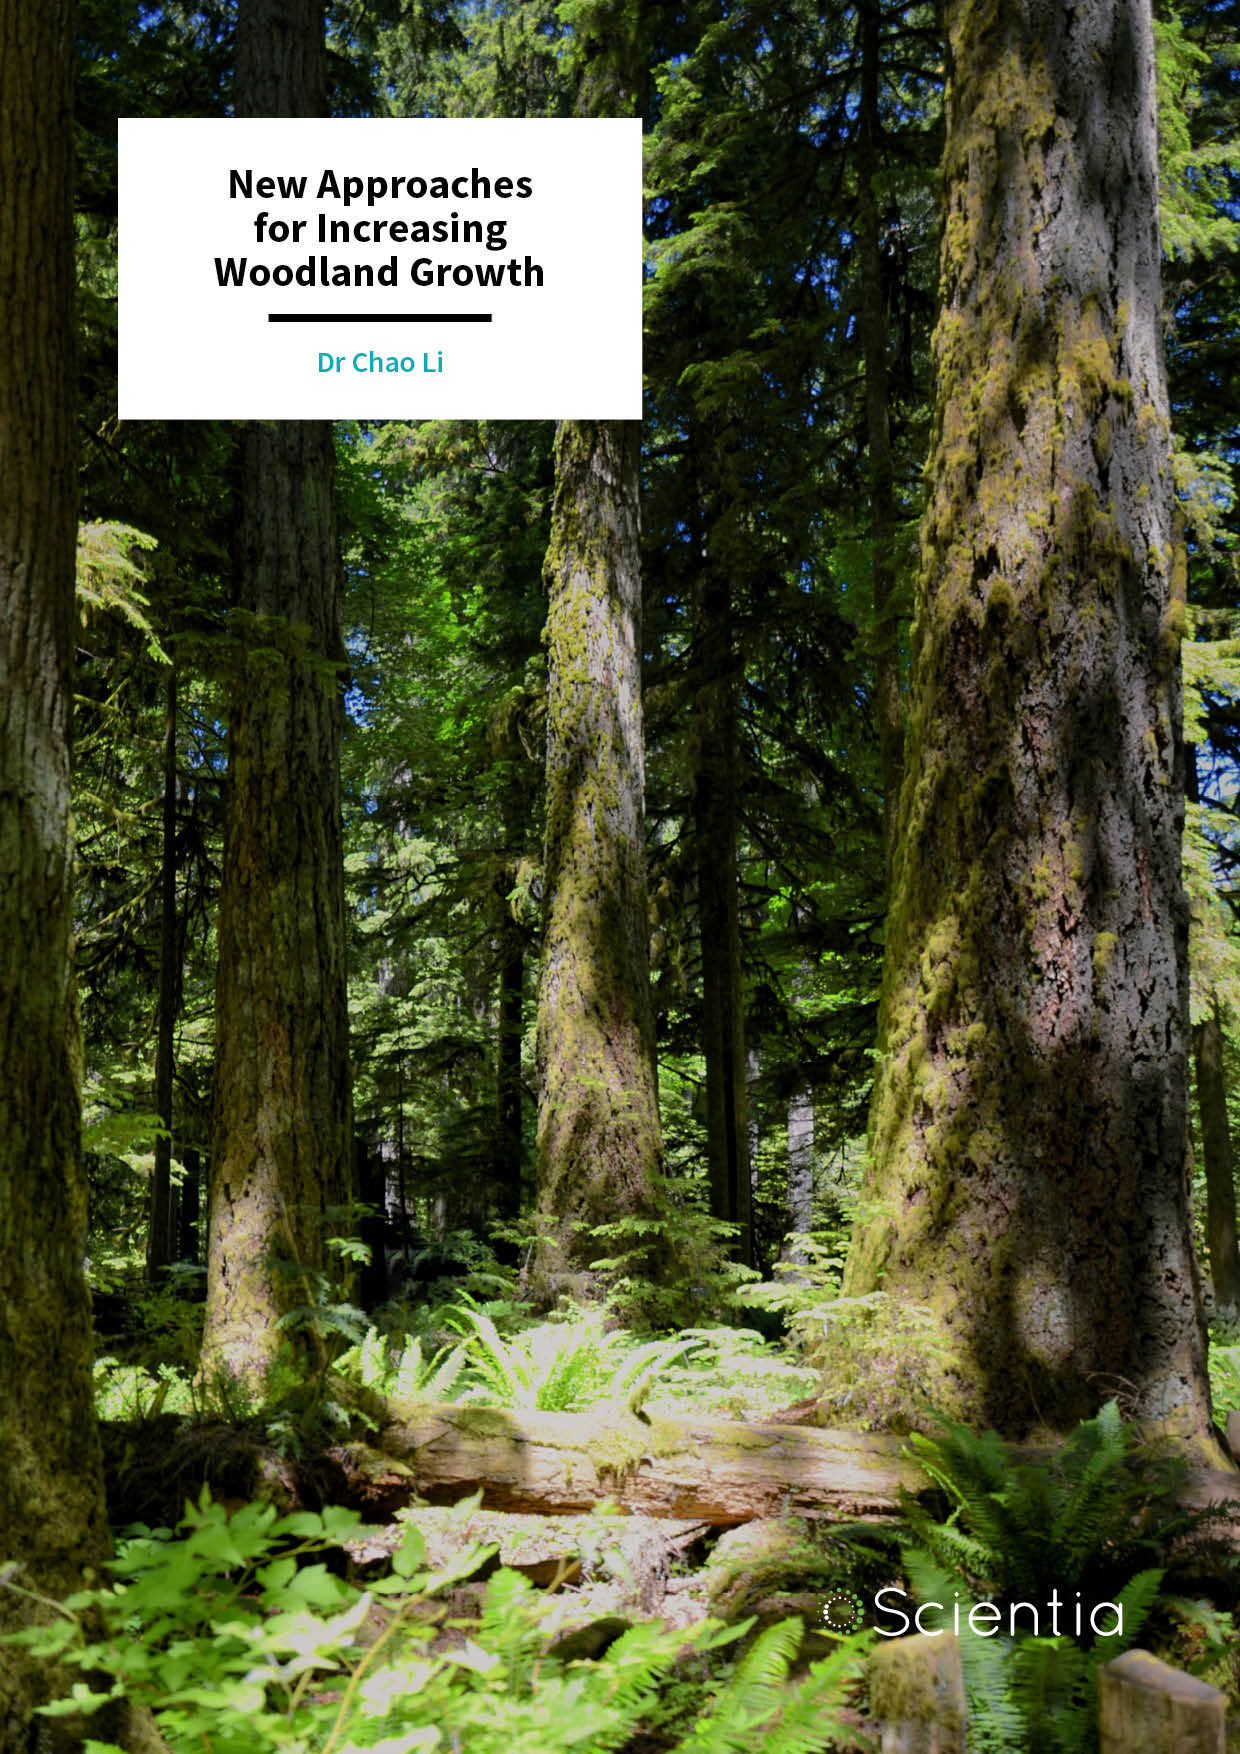 Dr Chao Li – New Approaches for Increasing Woodland Growth